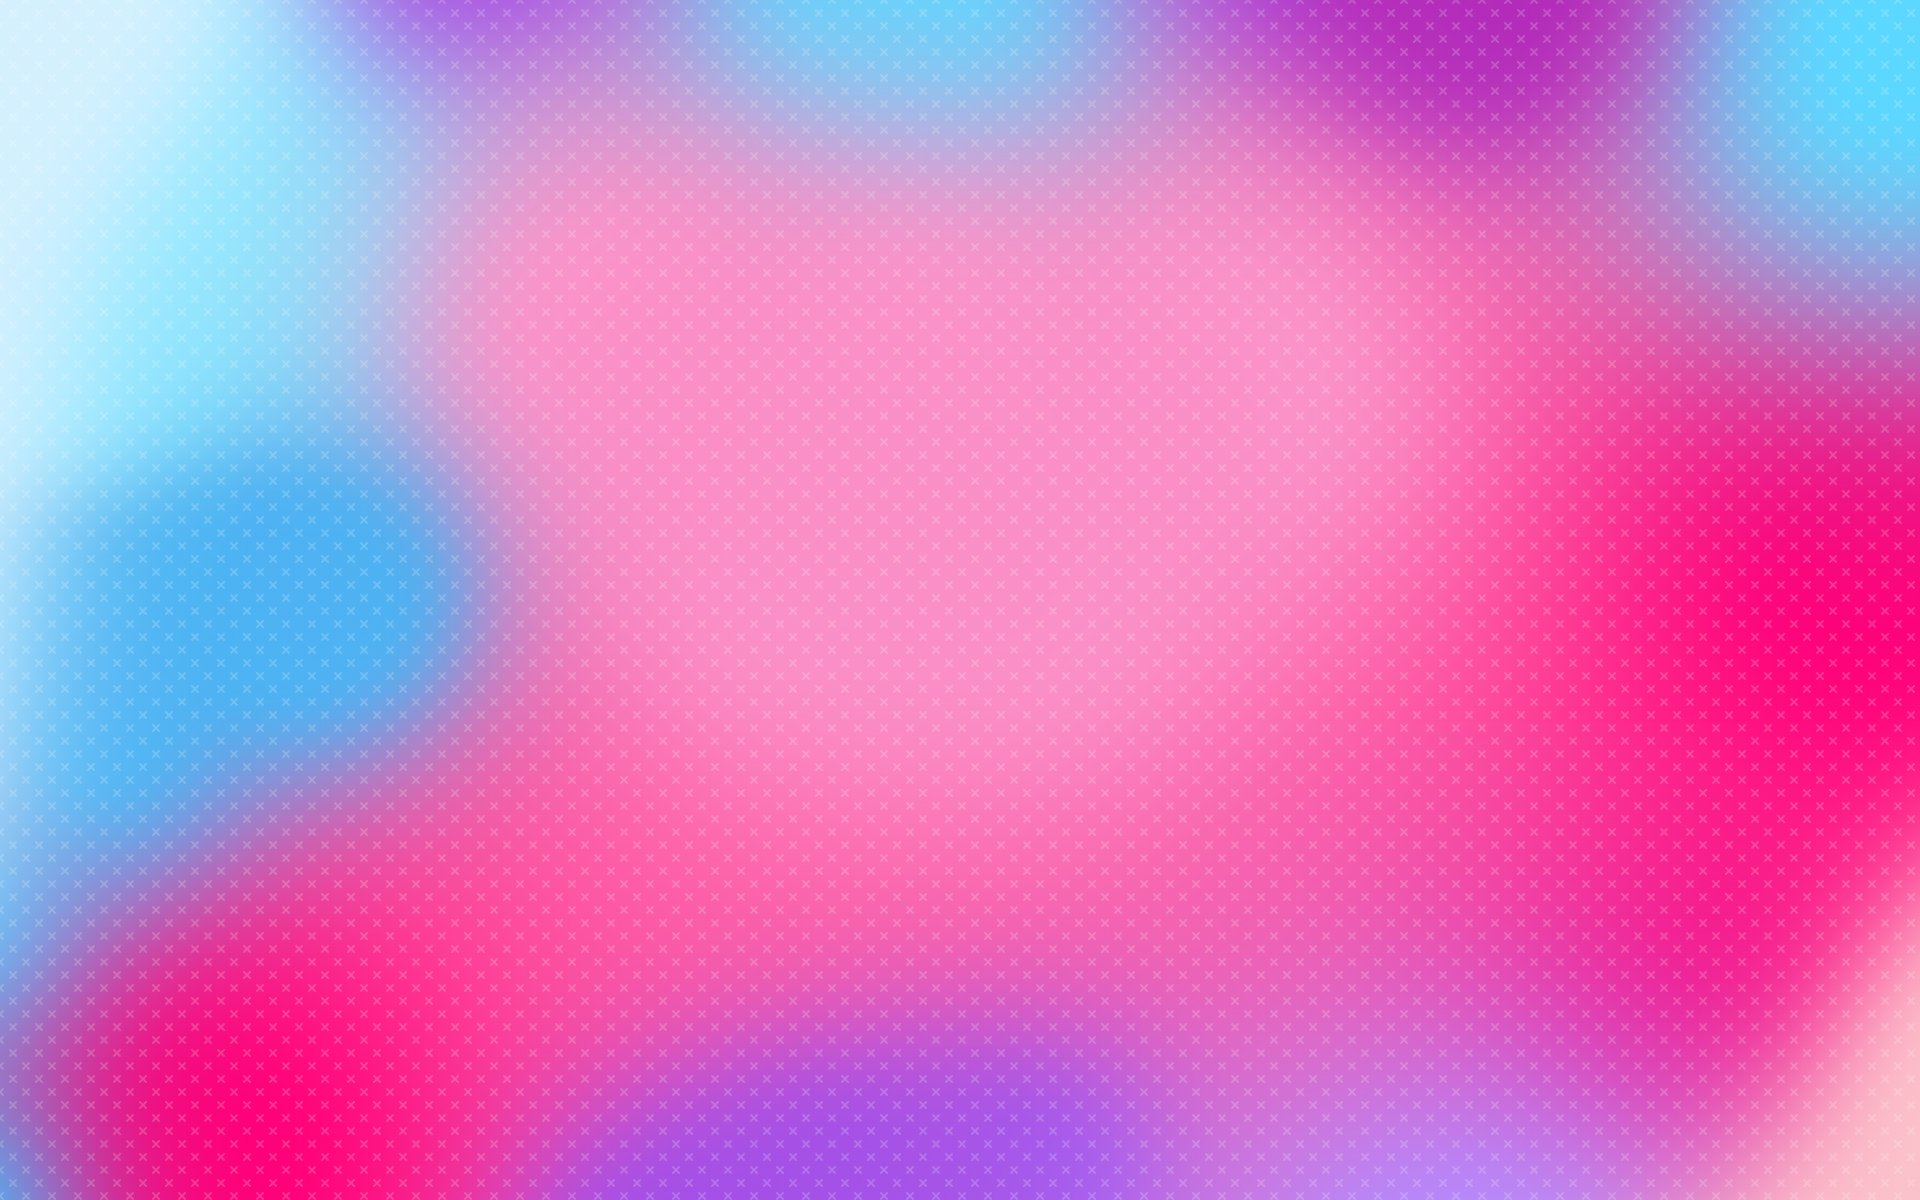 wallpapers backgrounds simple plexform pink filter resolutions 1920x1200